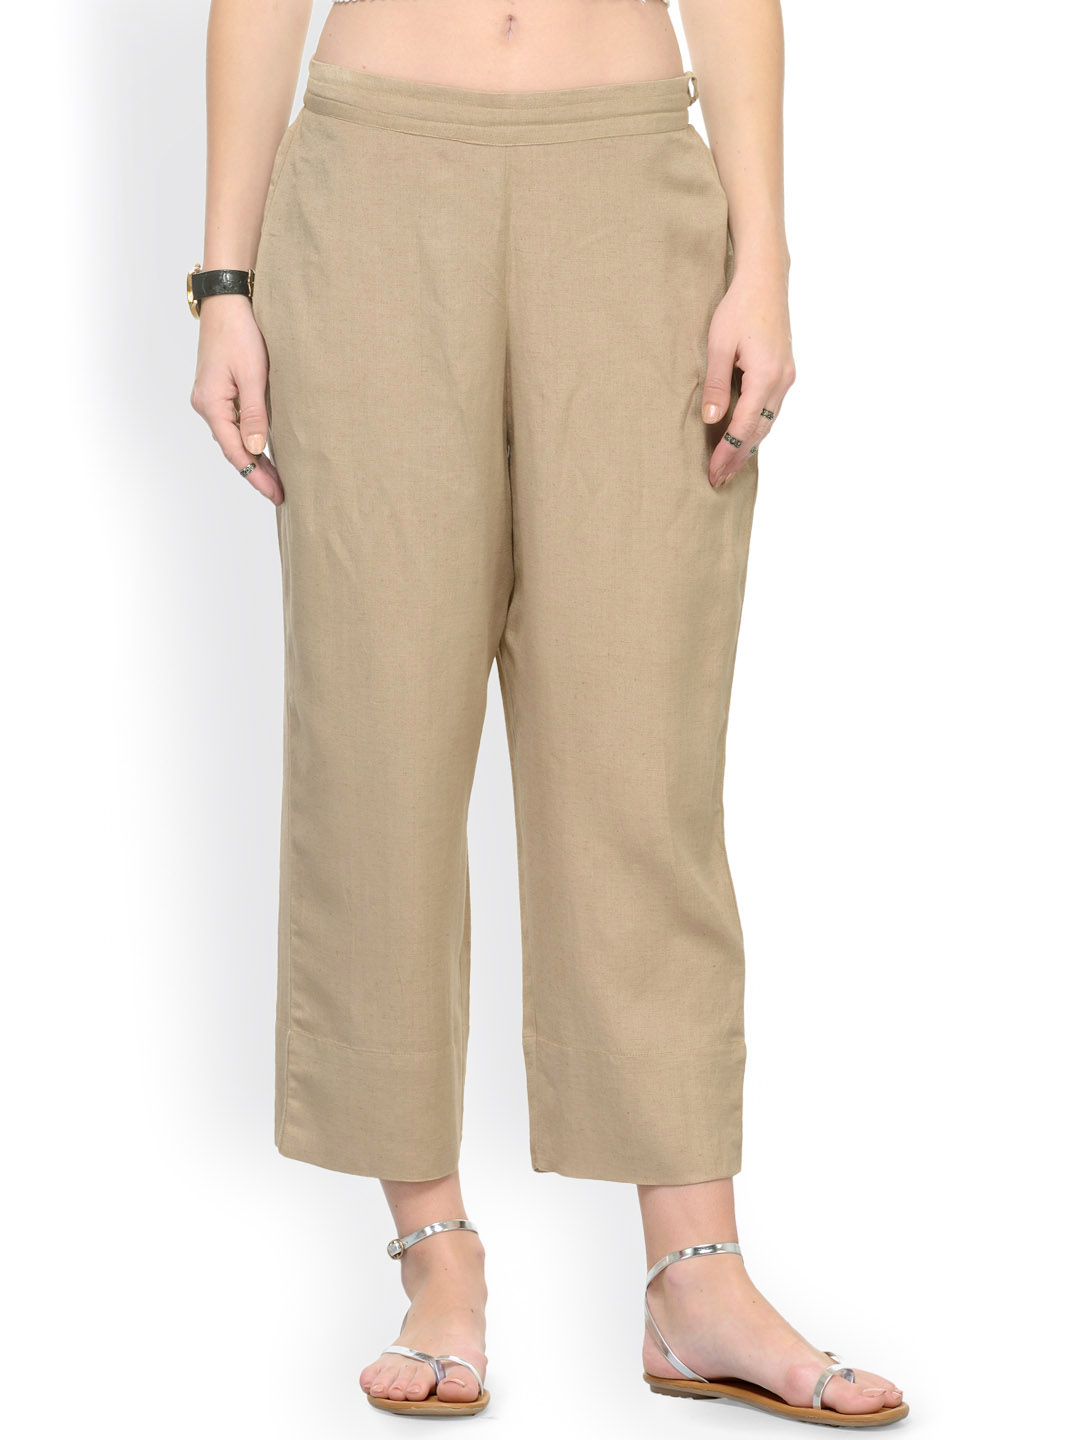 Beige Rayon Ankle Length Pant-33681